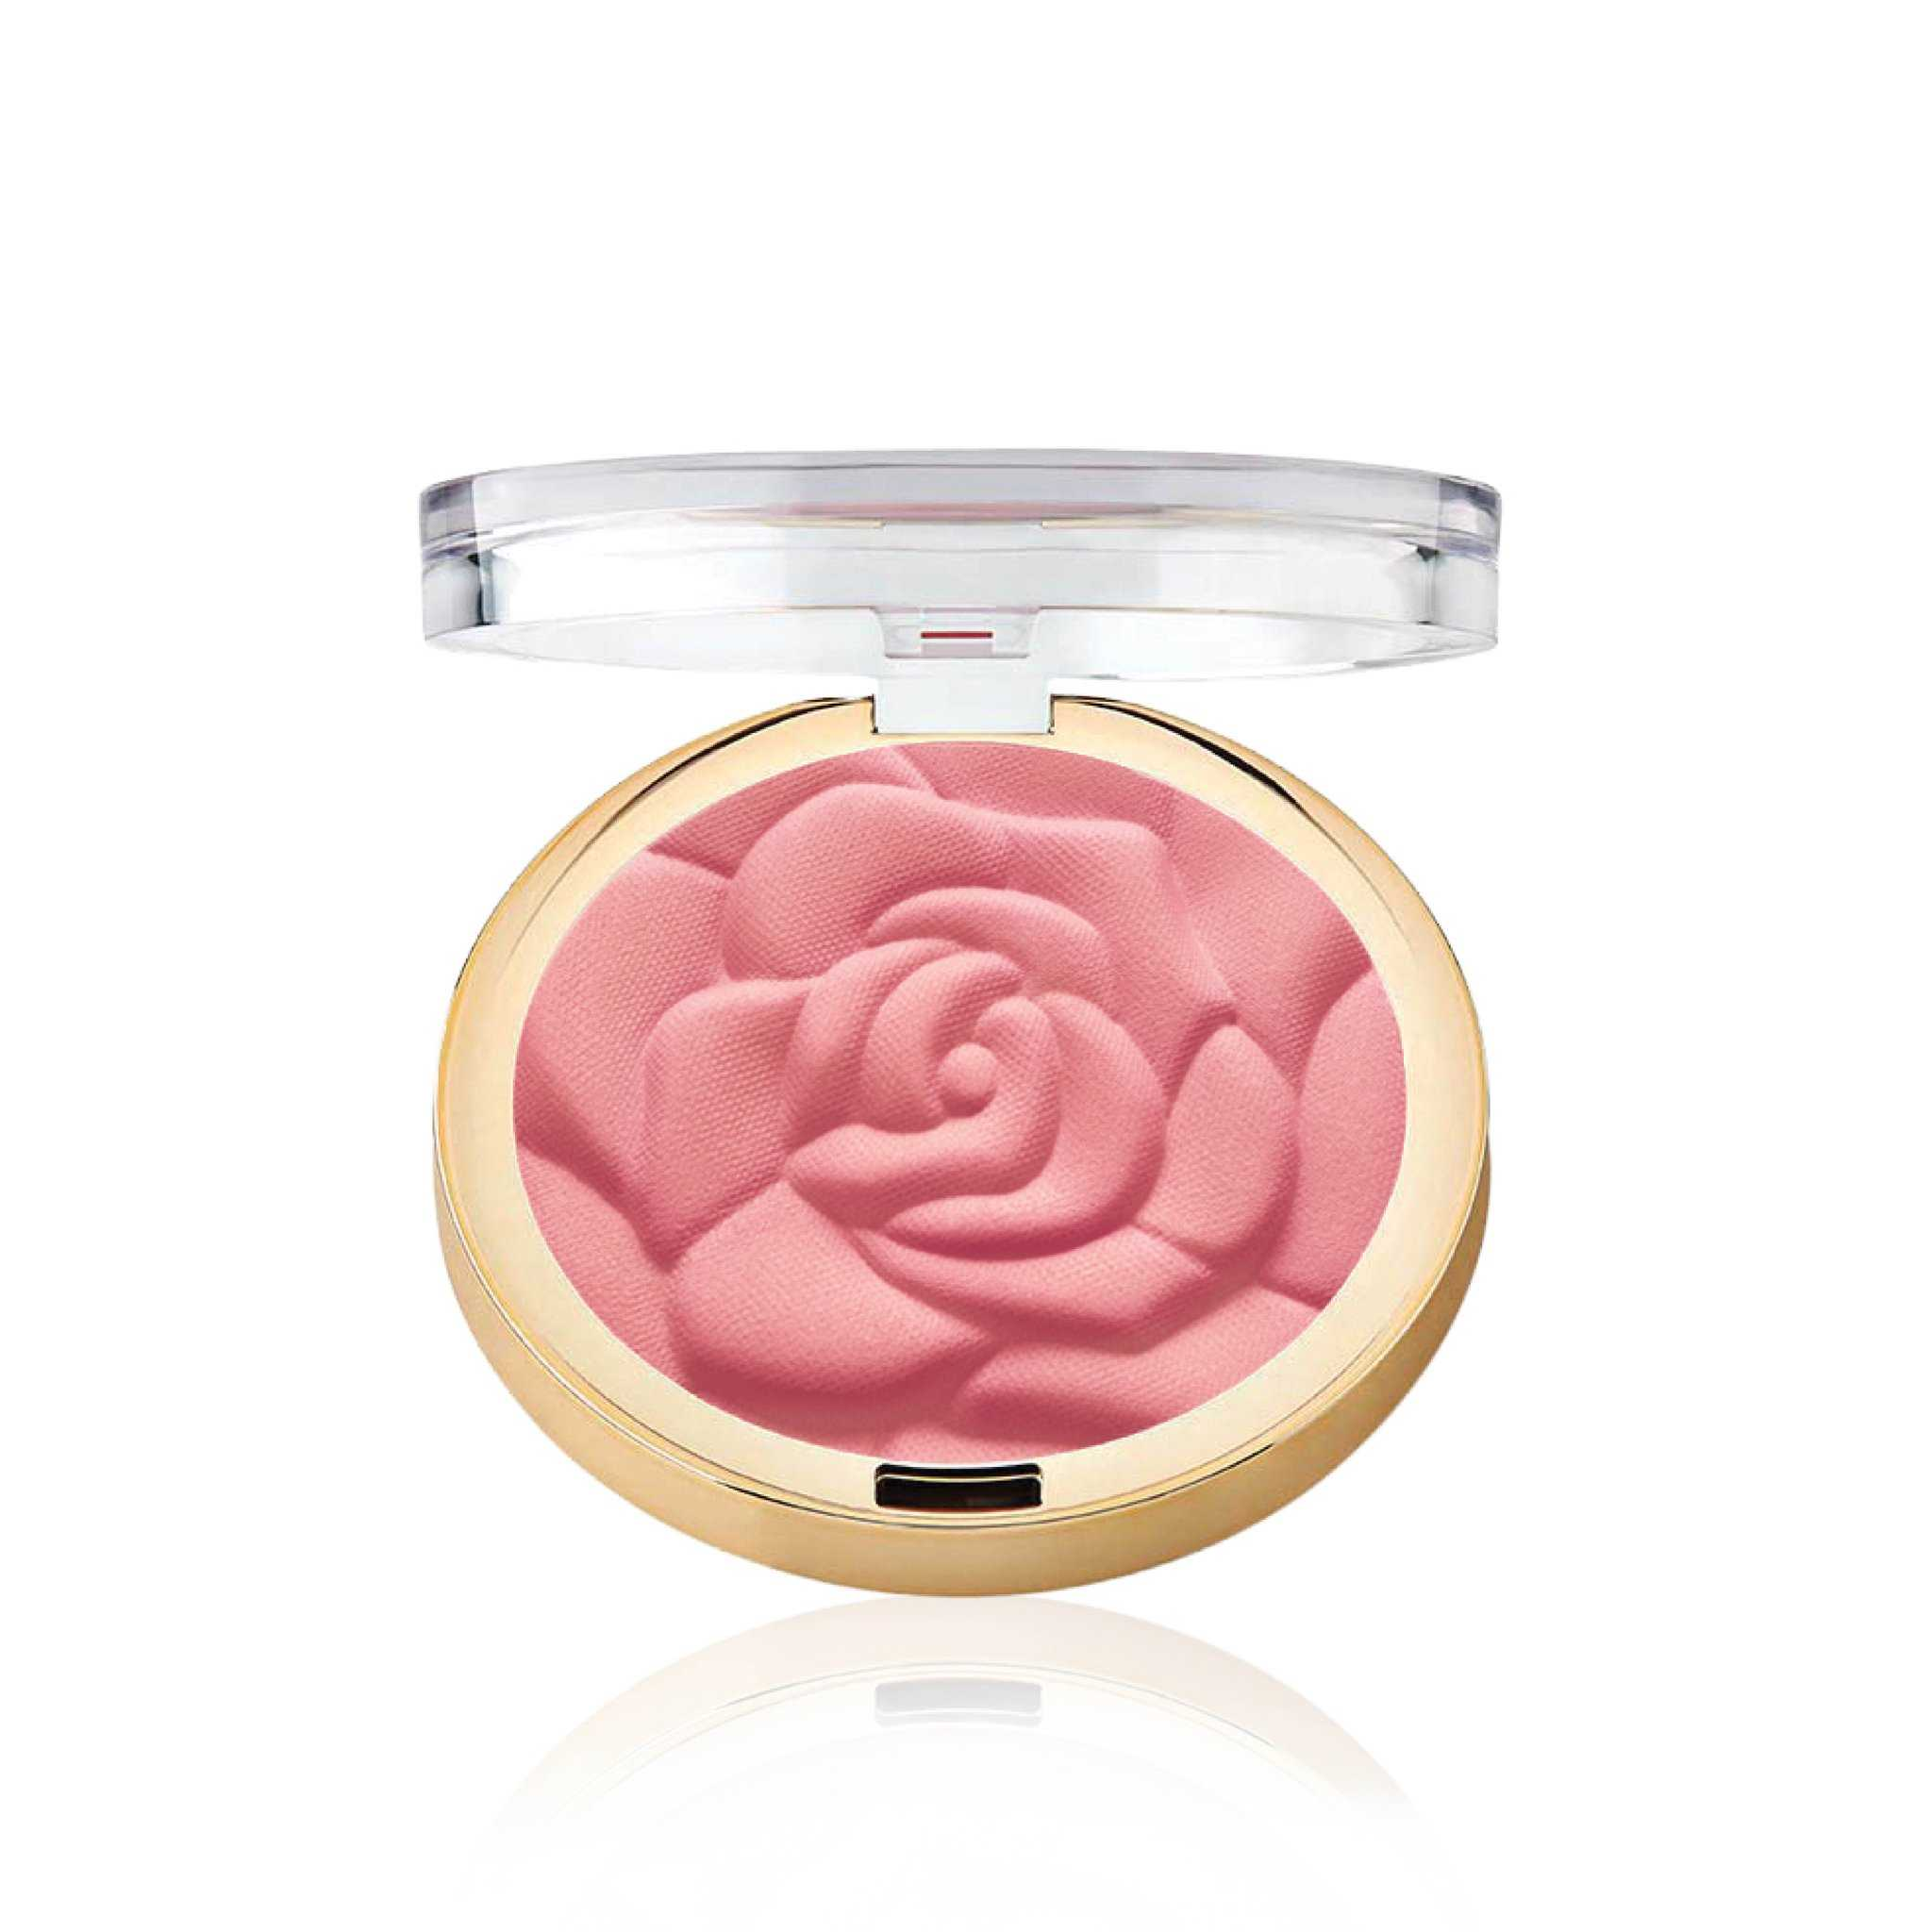 Milani - Rose Powder Blush -11 Blossomtime Rose